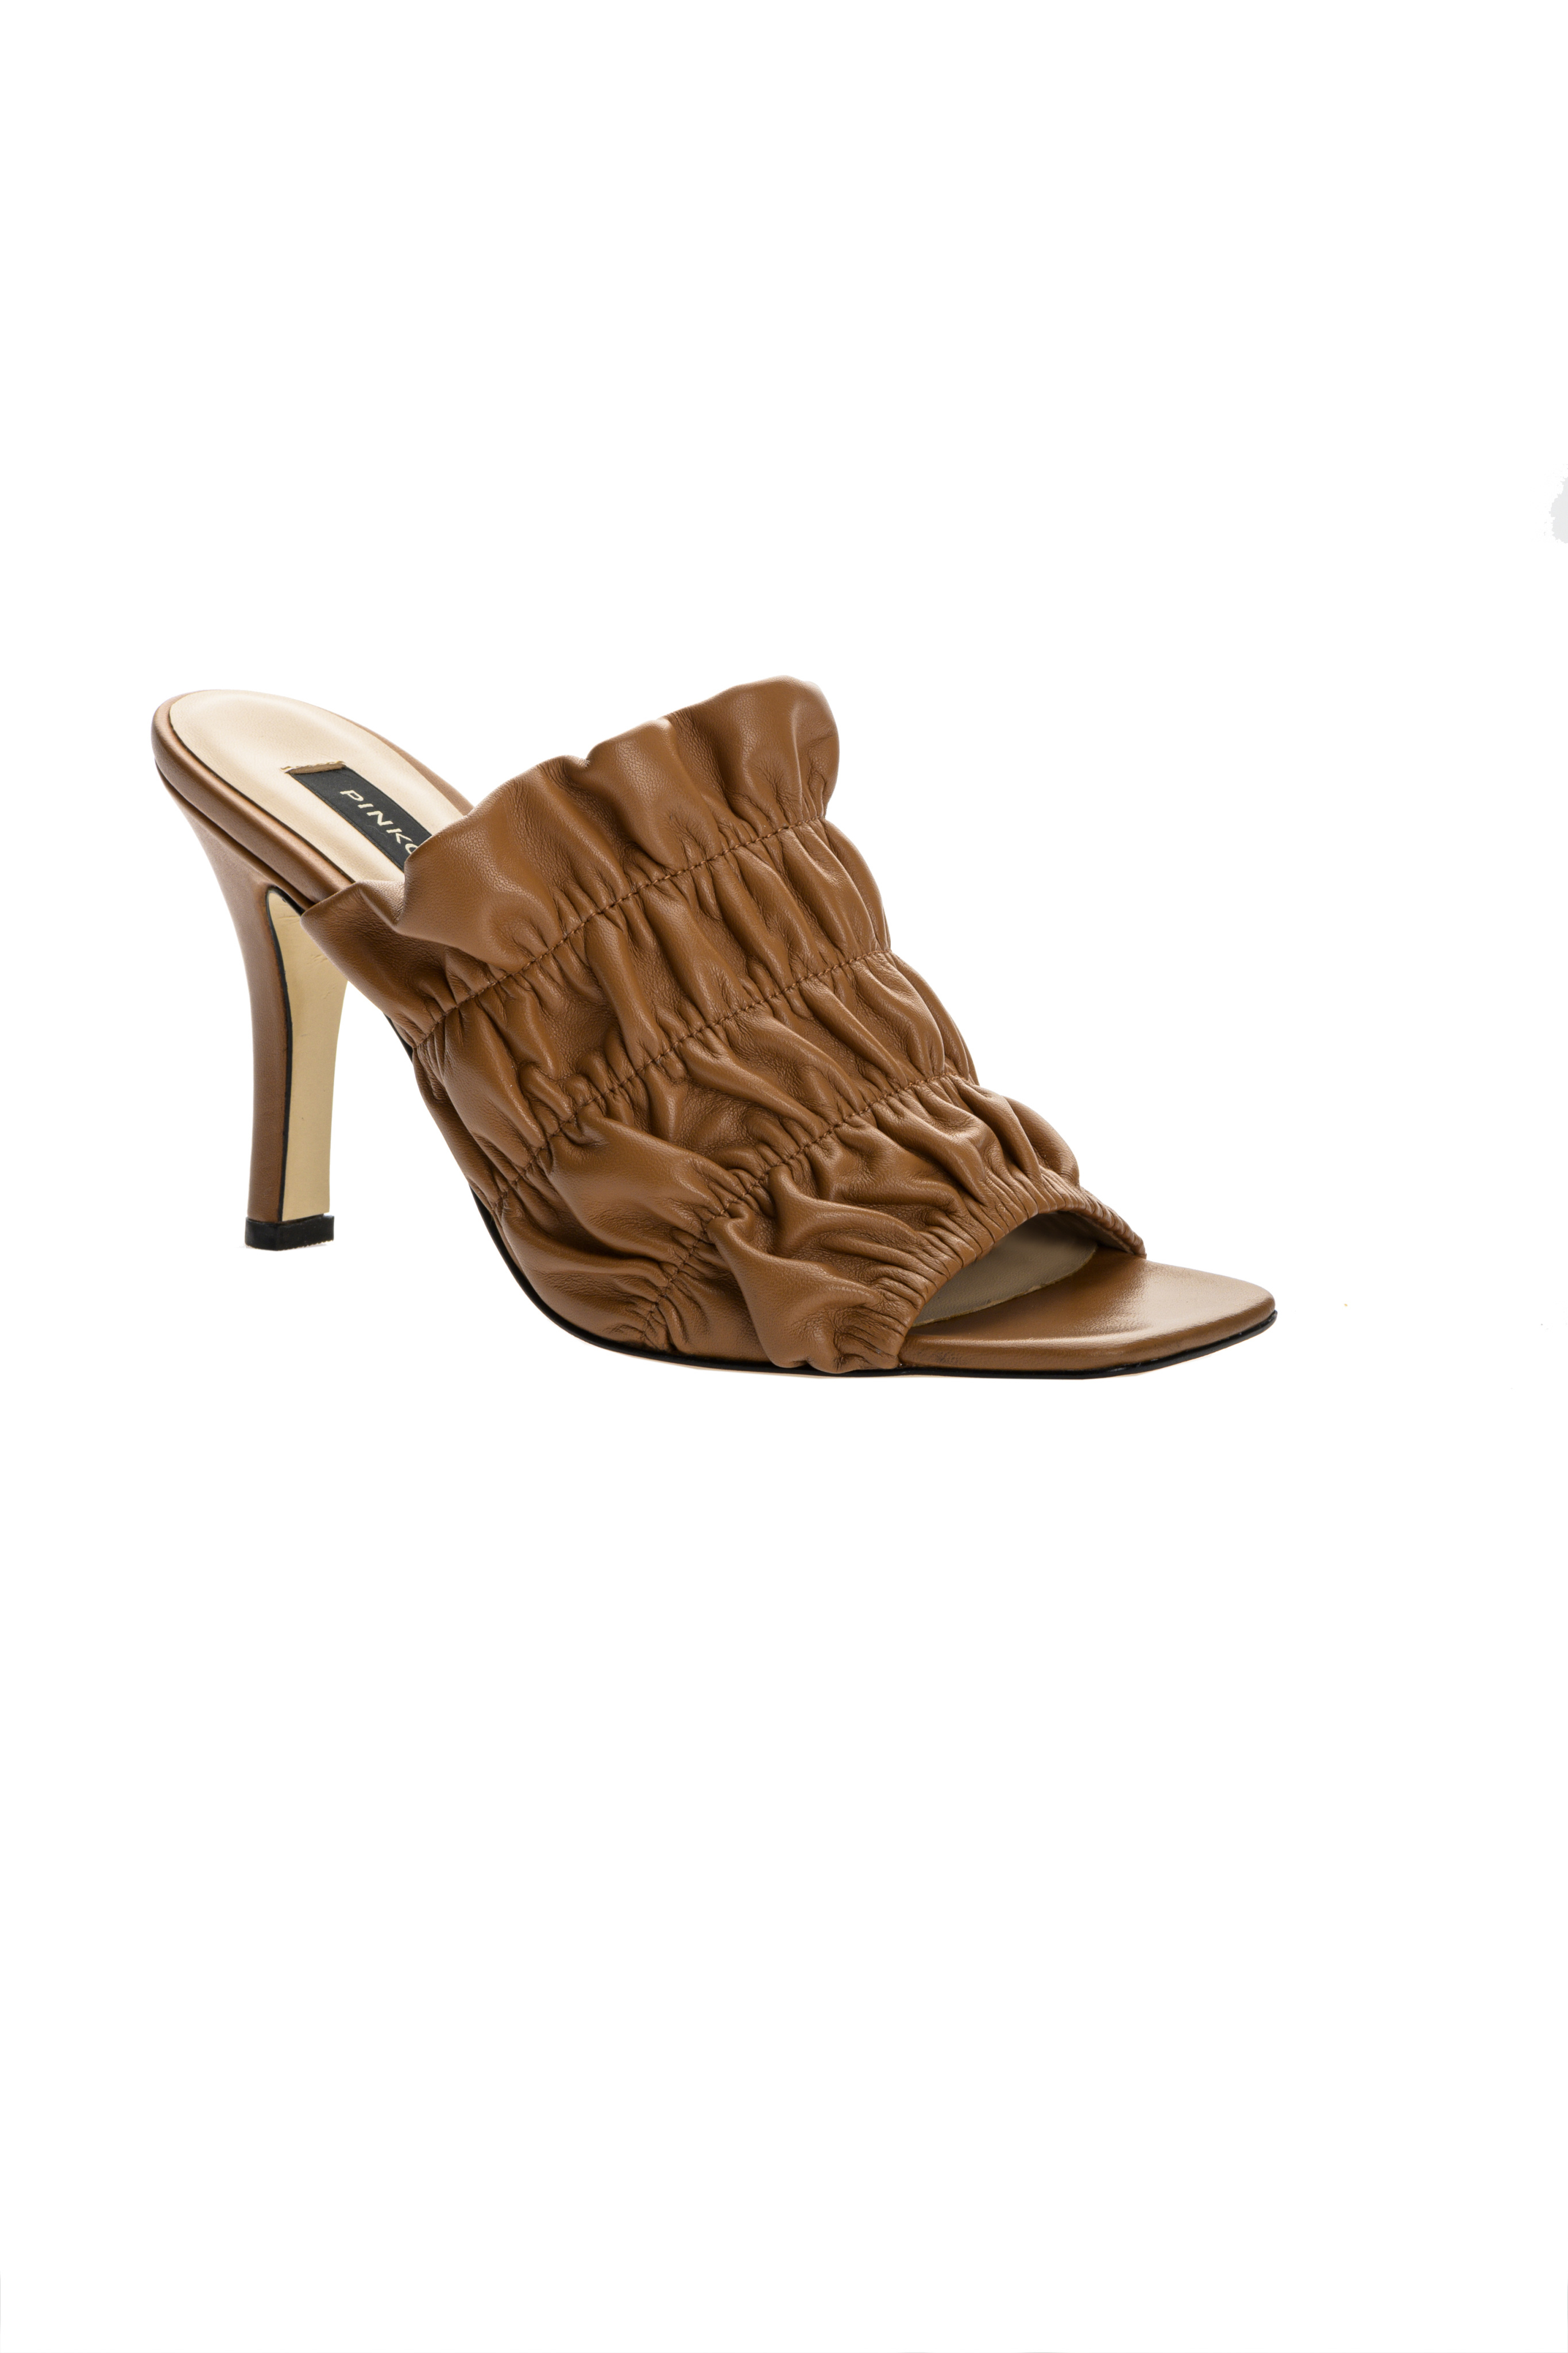 SHOPPING ON LINE PINKO SANDALI MULES IN NAPPA GOFFRATA CON TACCO NEW COLLECTION WOMEN'S SPRING SUMMER 2021